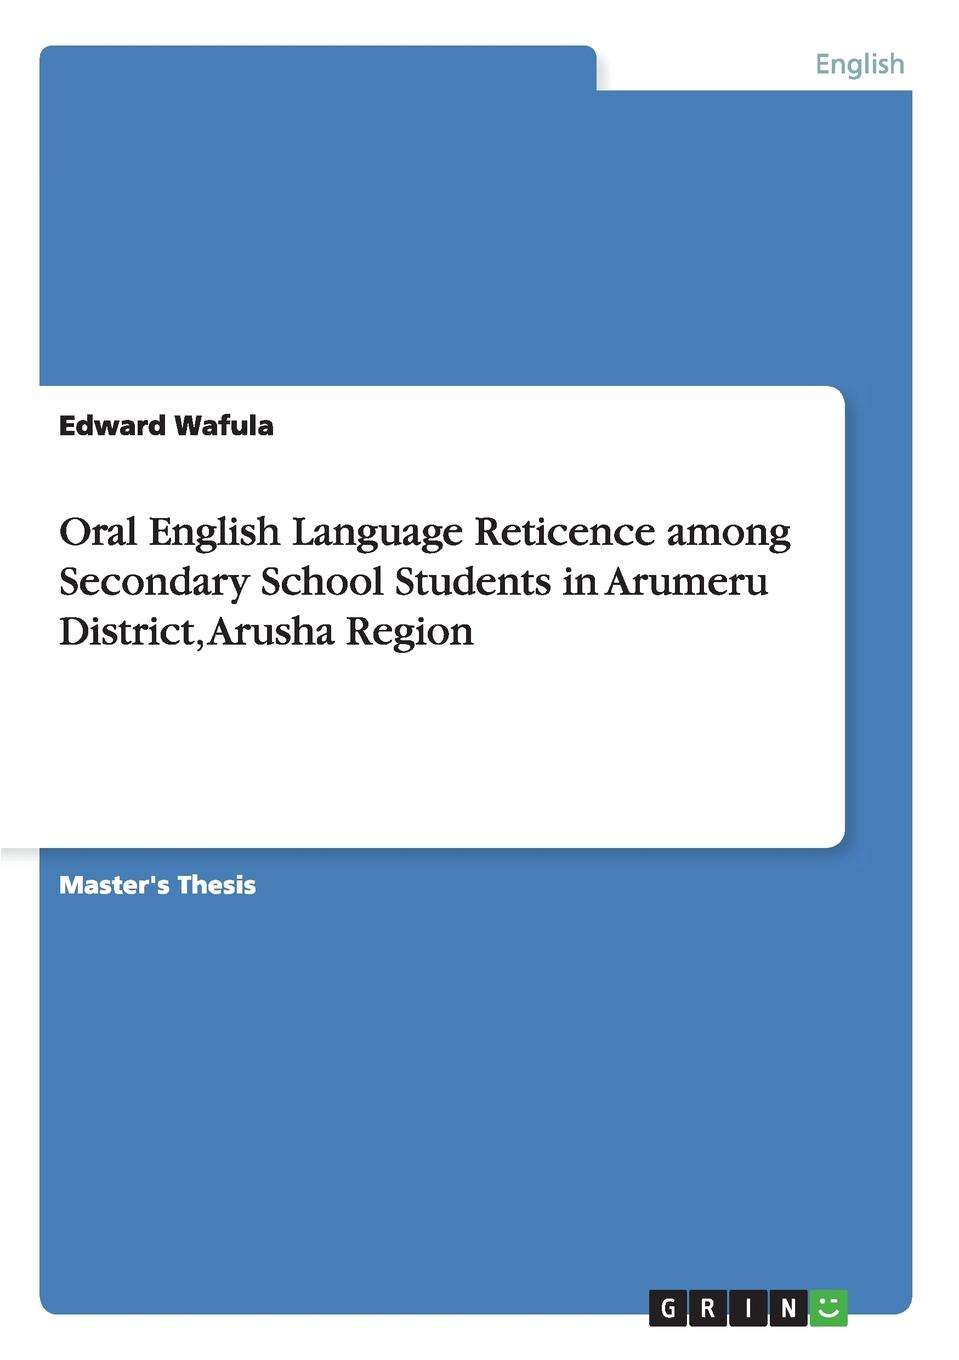 Edward Wafula Oral English Language Reticence among Secondary School Students in Arumeru District, Arusha Region christopher blake oral esl test anxiety with emirati secondary school students